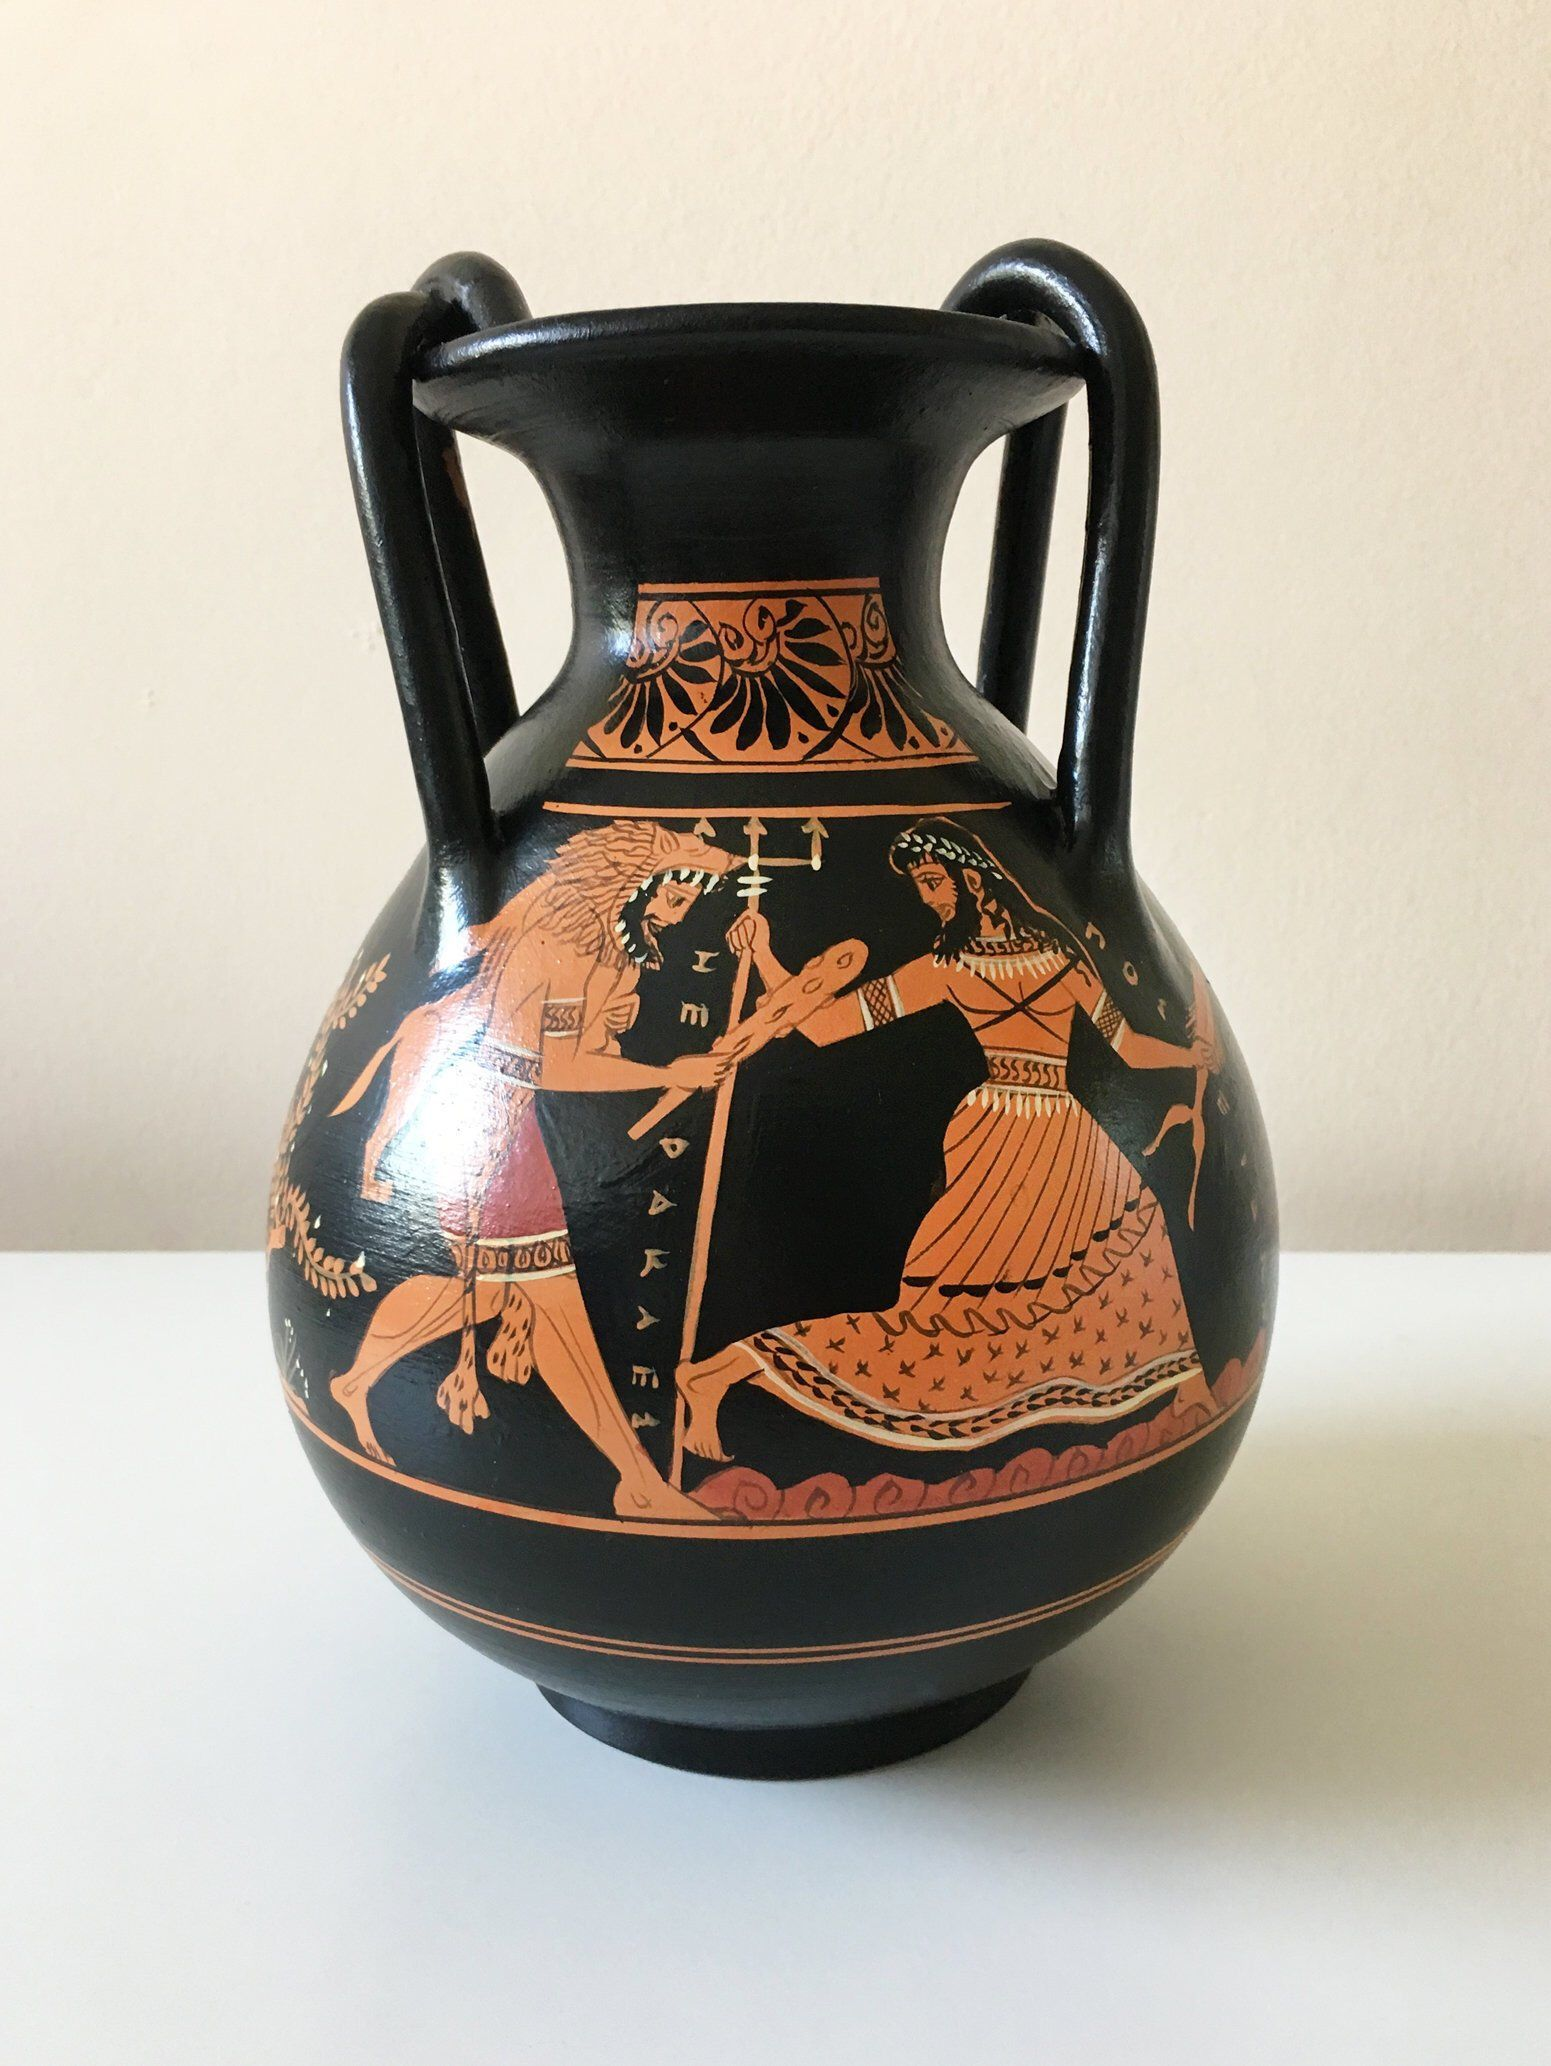 Greek Pottery Replica Red Figure Vase With Hercules And Etsy Greek Pottery Ancient Greek Pottery Greek Vases